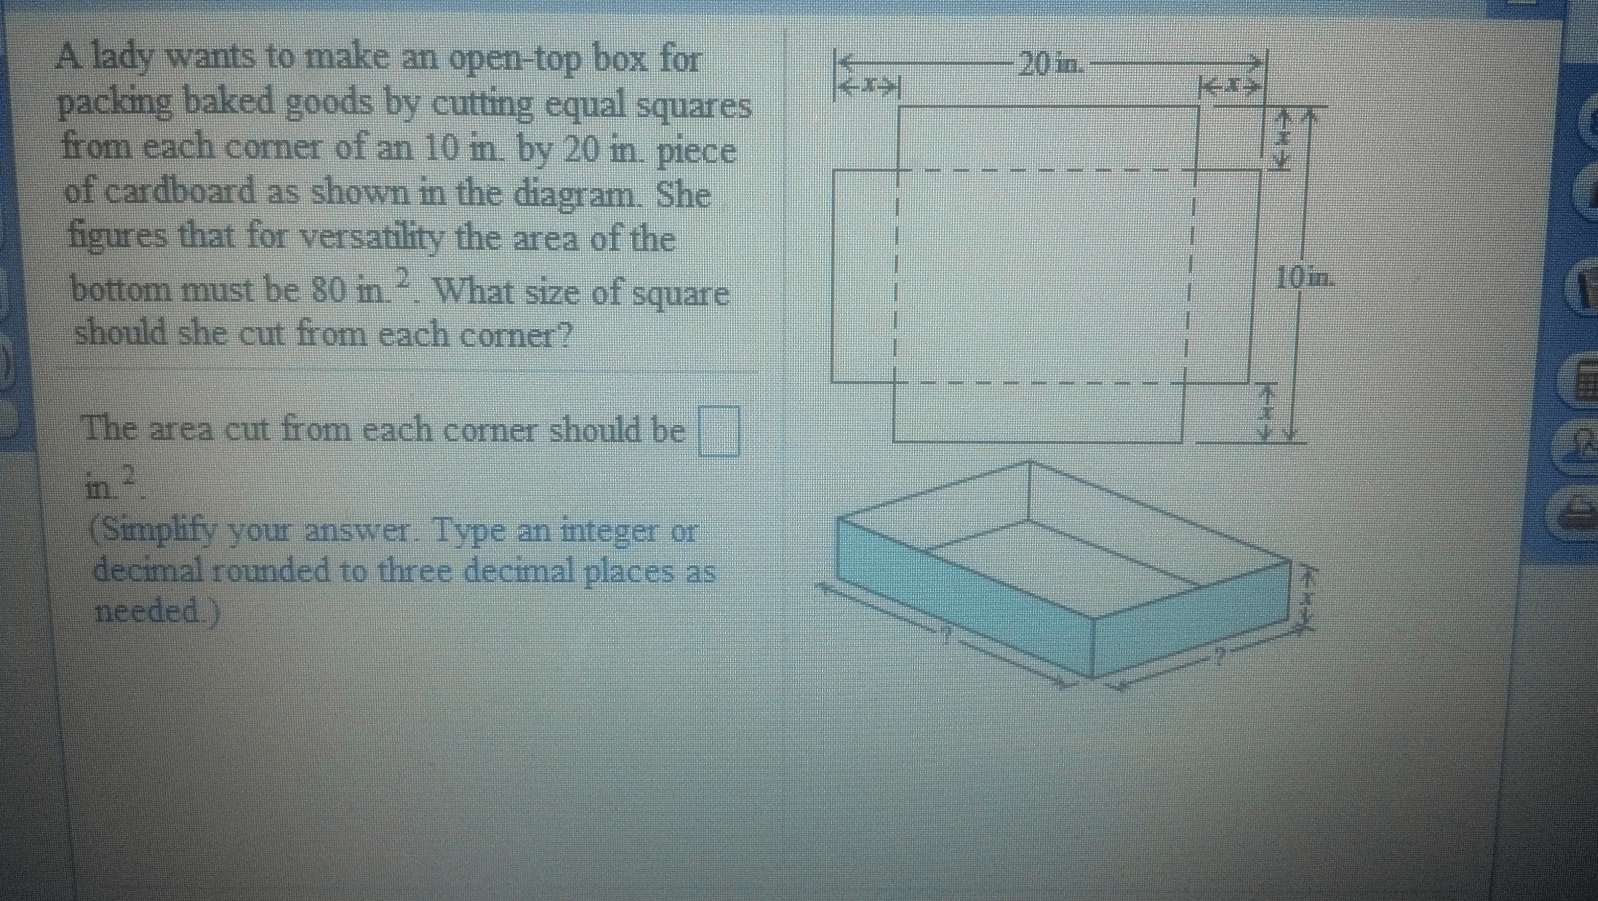 hight resolution of a lady wants to make an open top box for packing b